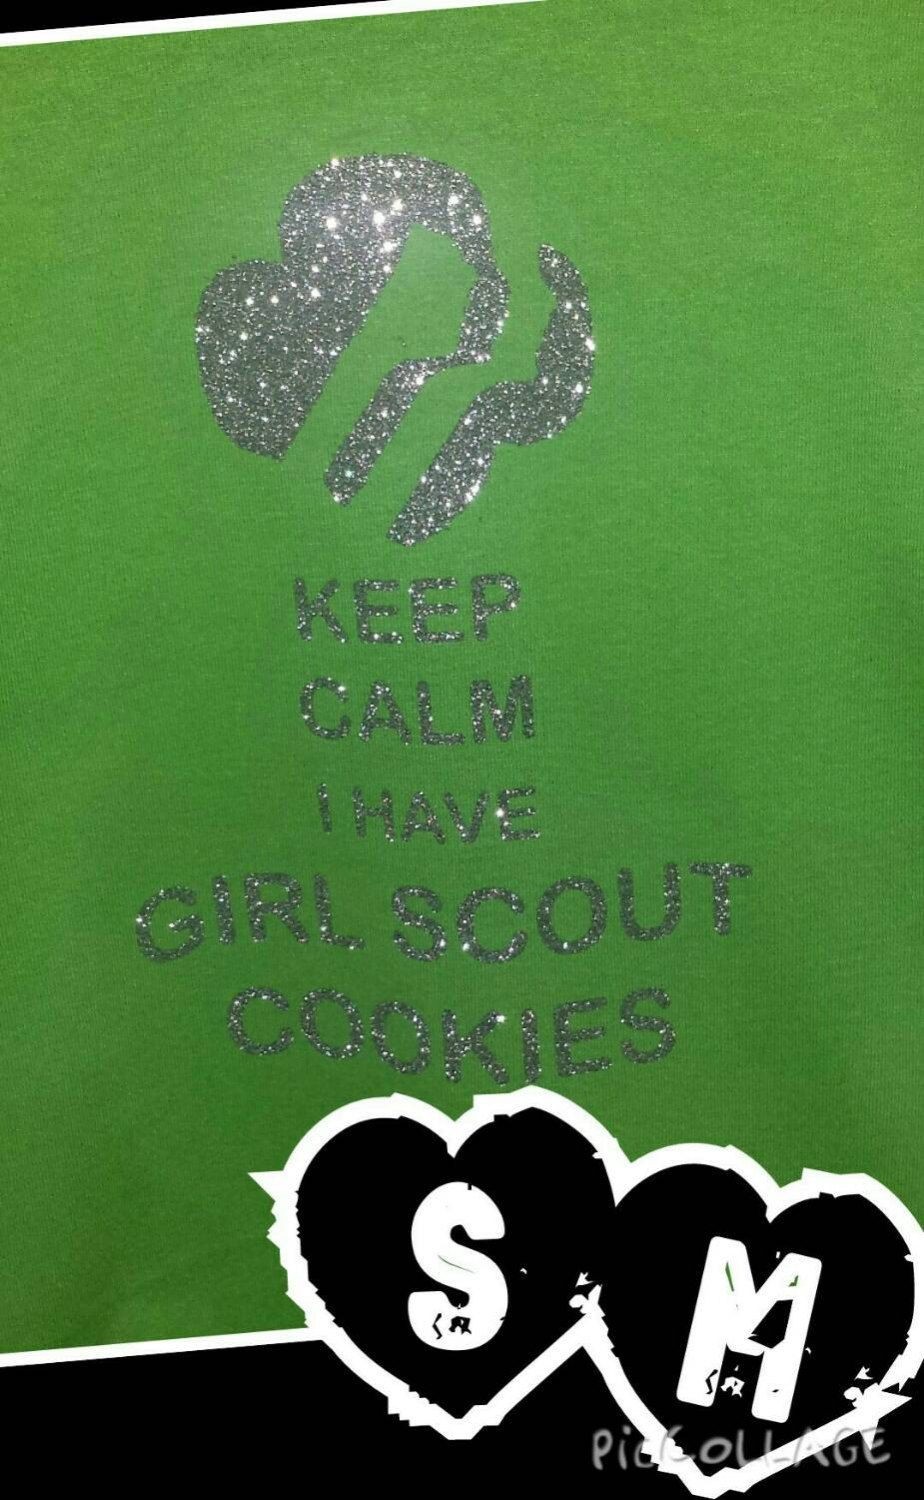 Girl Scout Cookie Booth shirts by StacyMichelles on Etsy